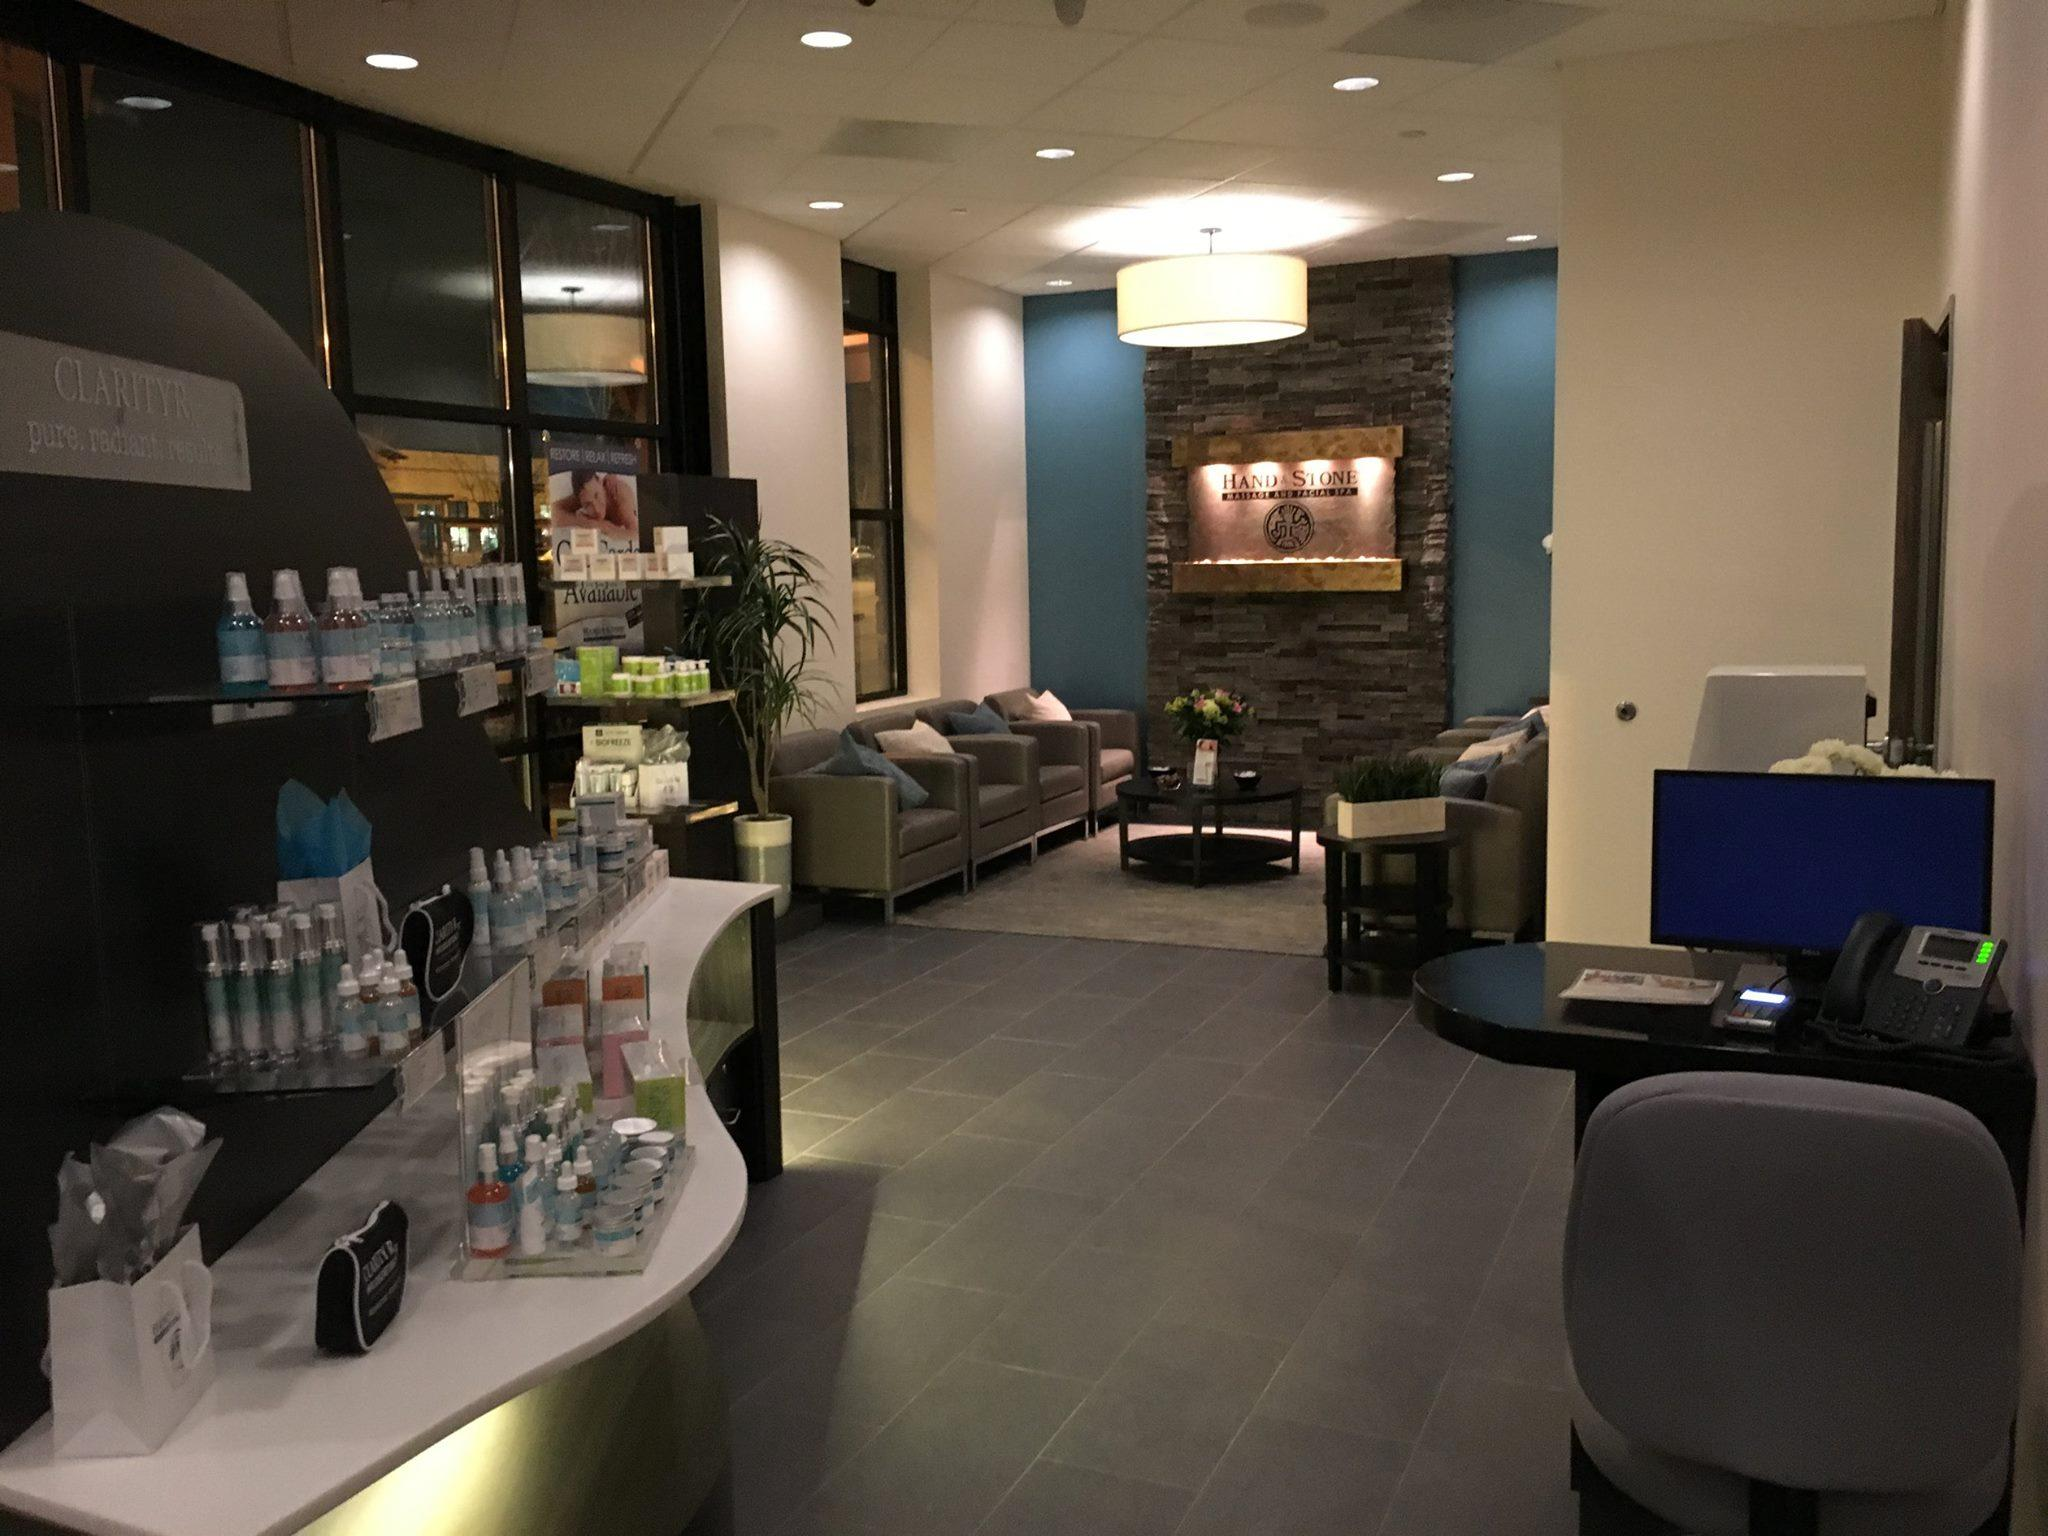 The lobby, retail island and reception area